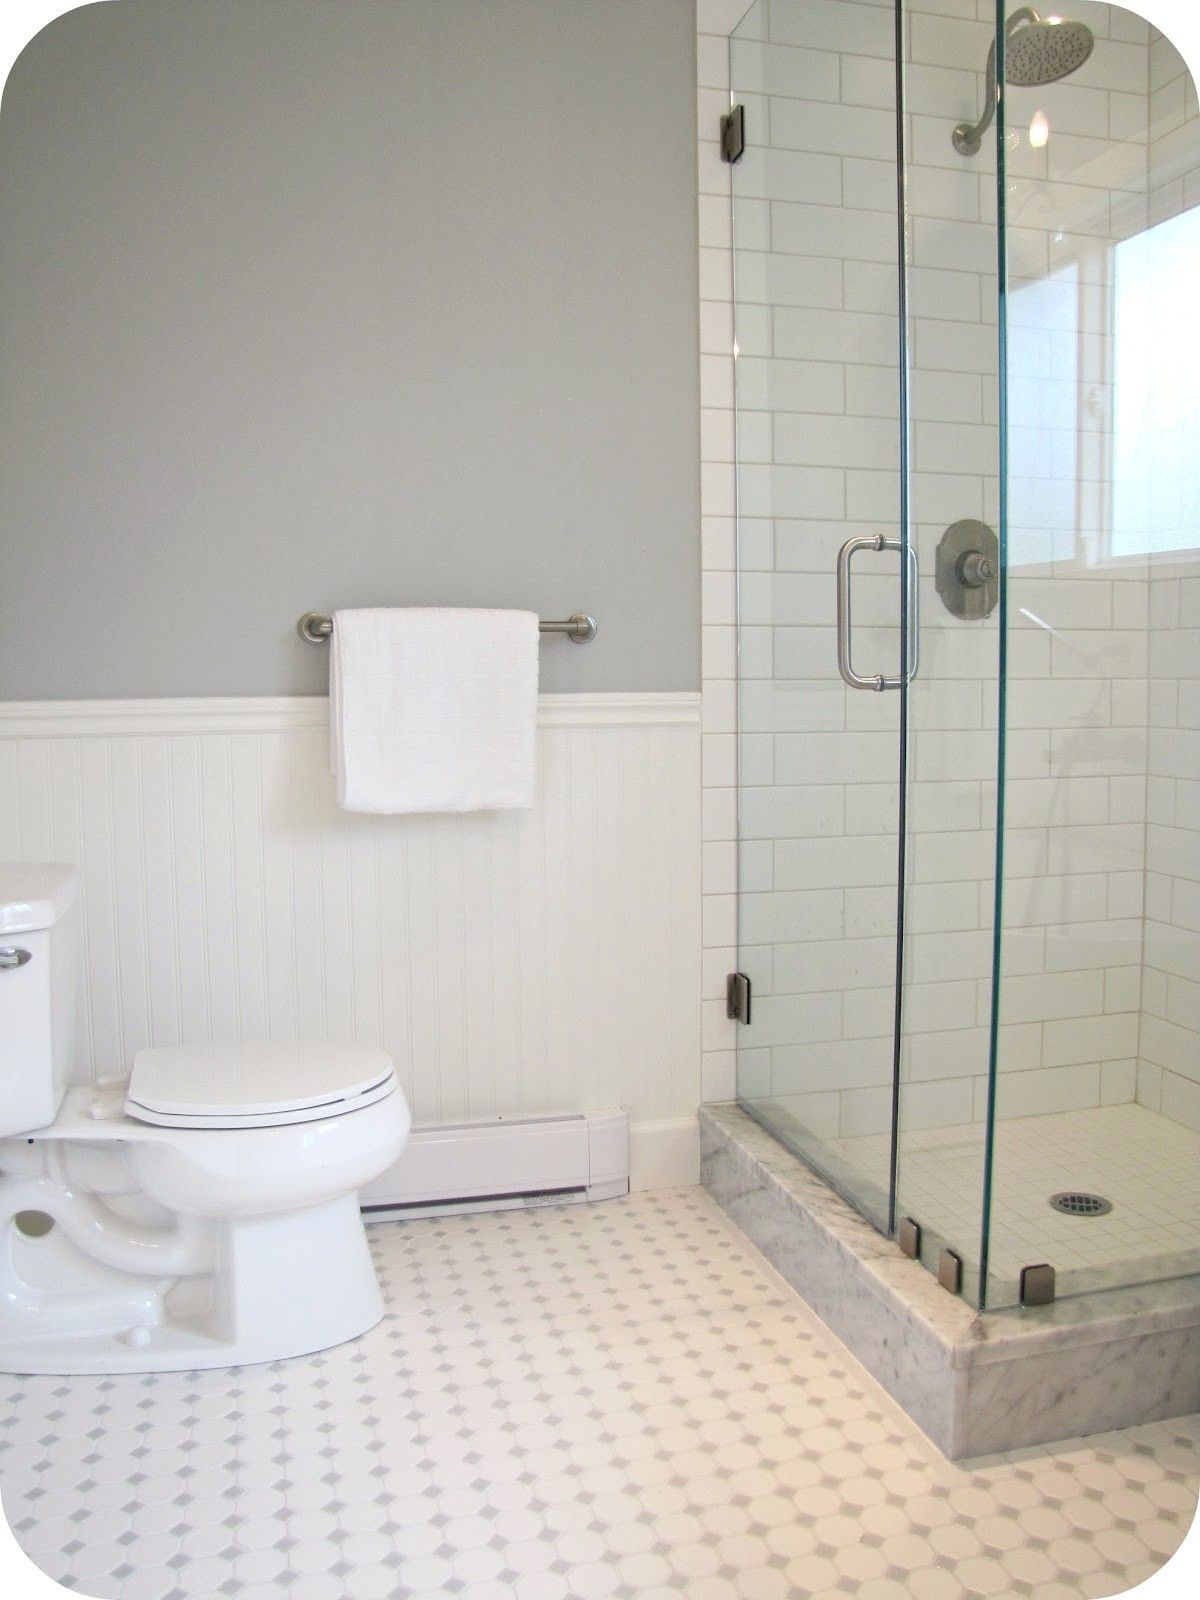 design for tiling shower walls with large white tile - Google Search ...